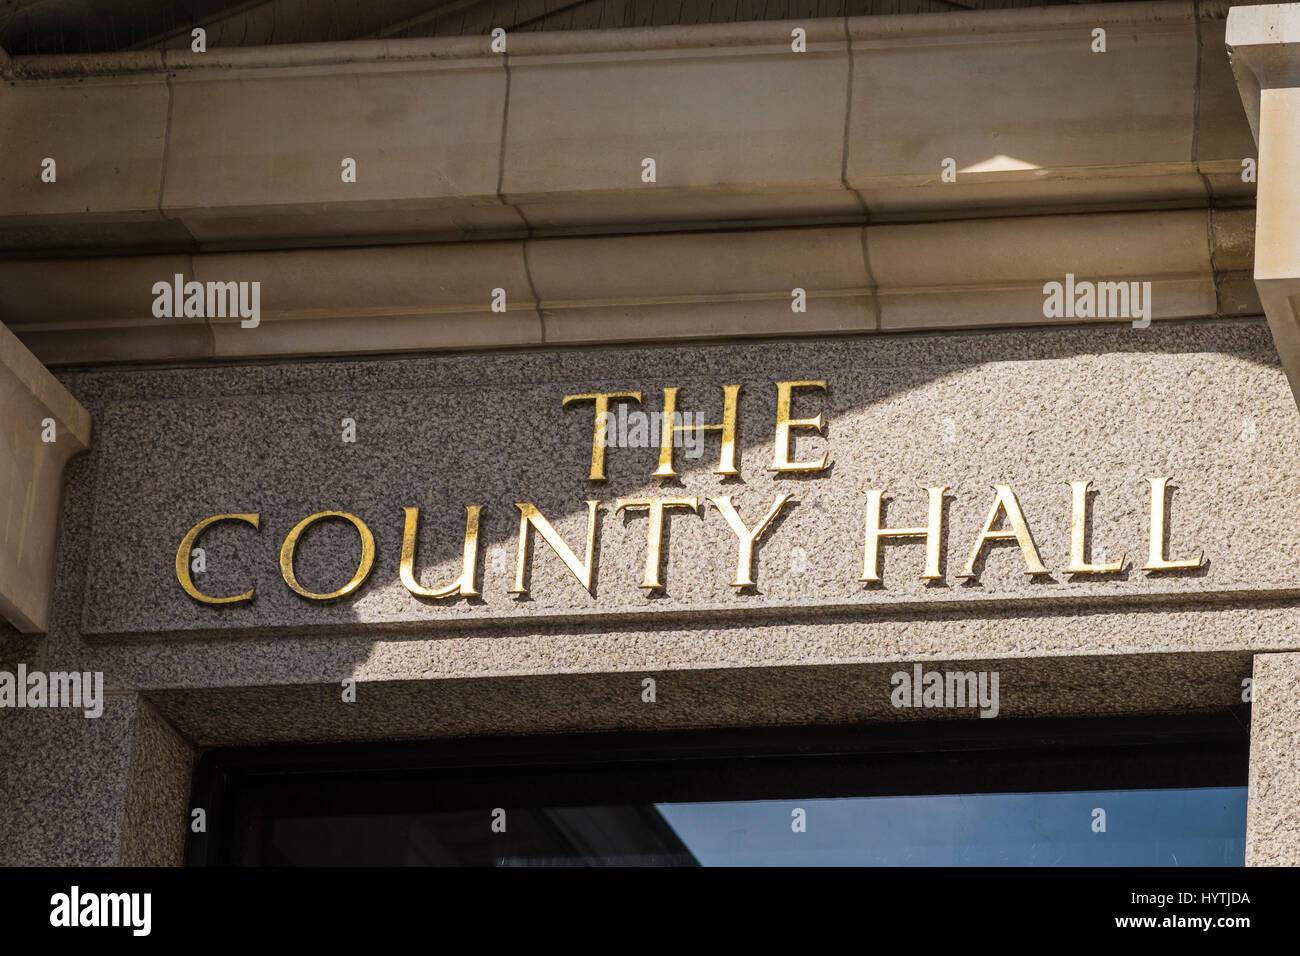 County Hall is a building in London that was the headquarters of London County Council and later the Greater London - Stock Image